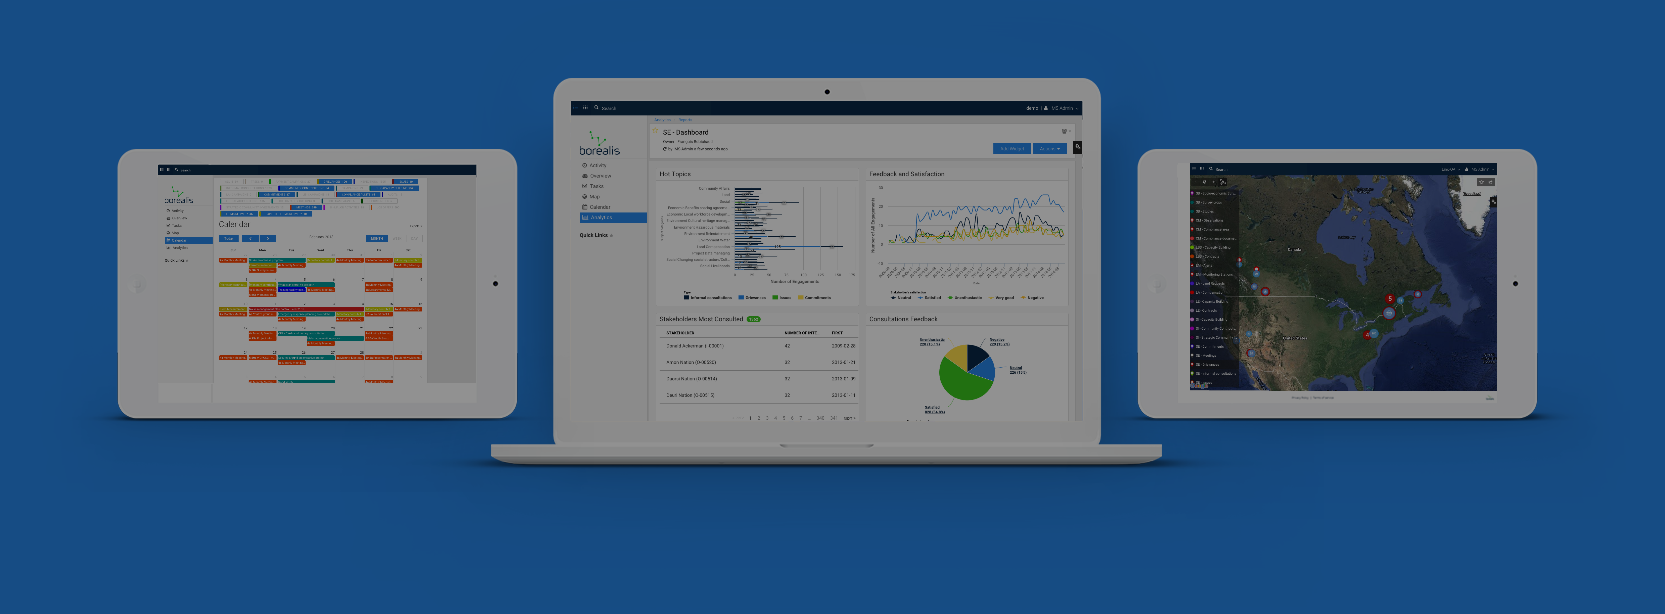 New-release-analytics